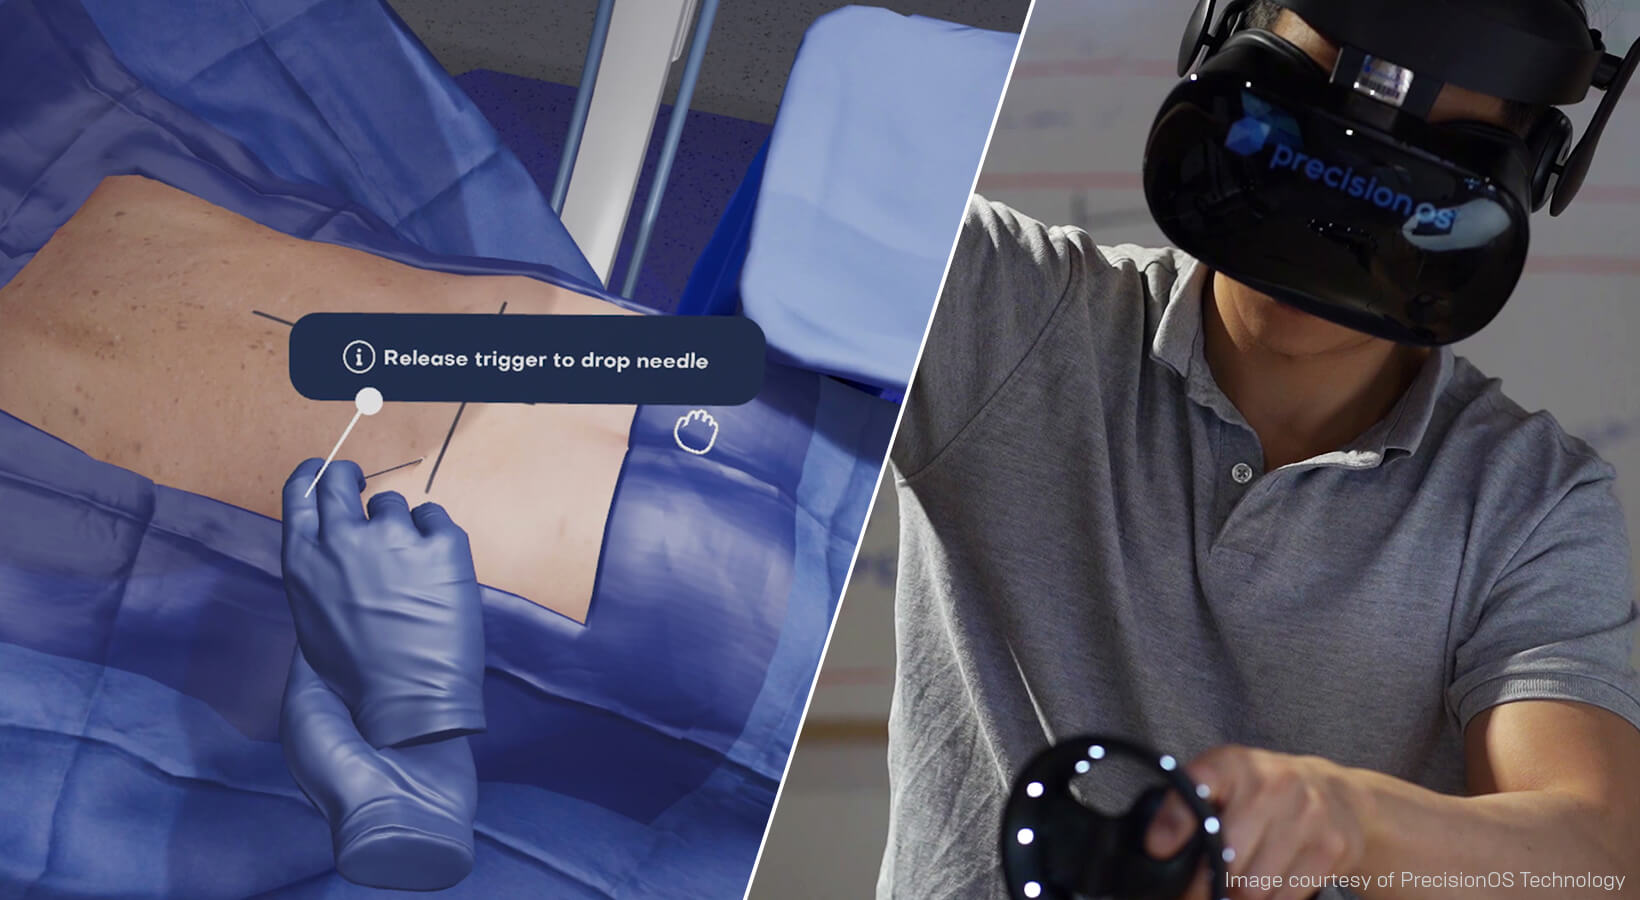 VR medical simulation from Precision OS trains surgeons five times faster